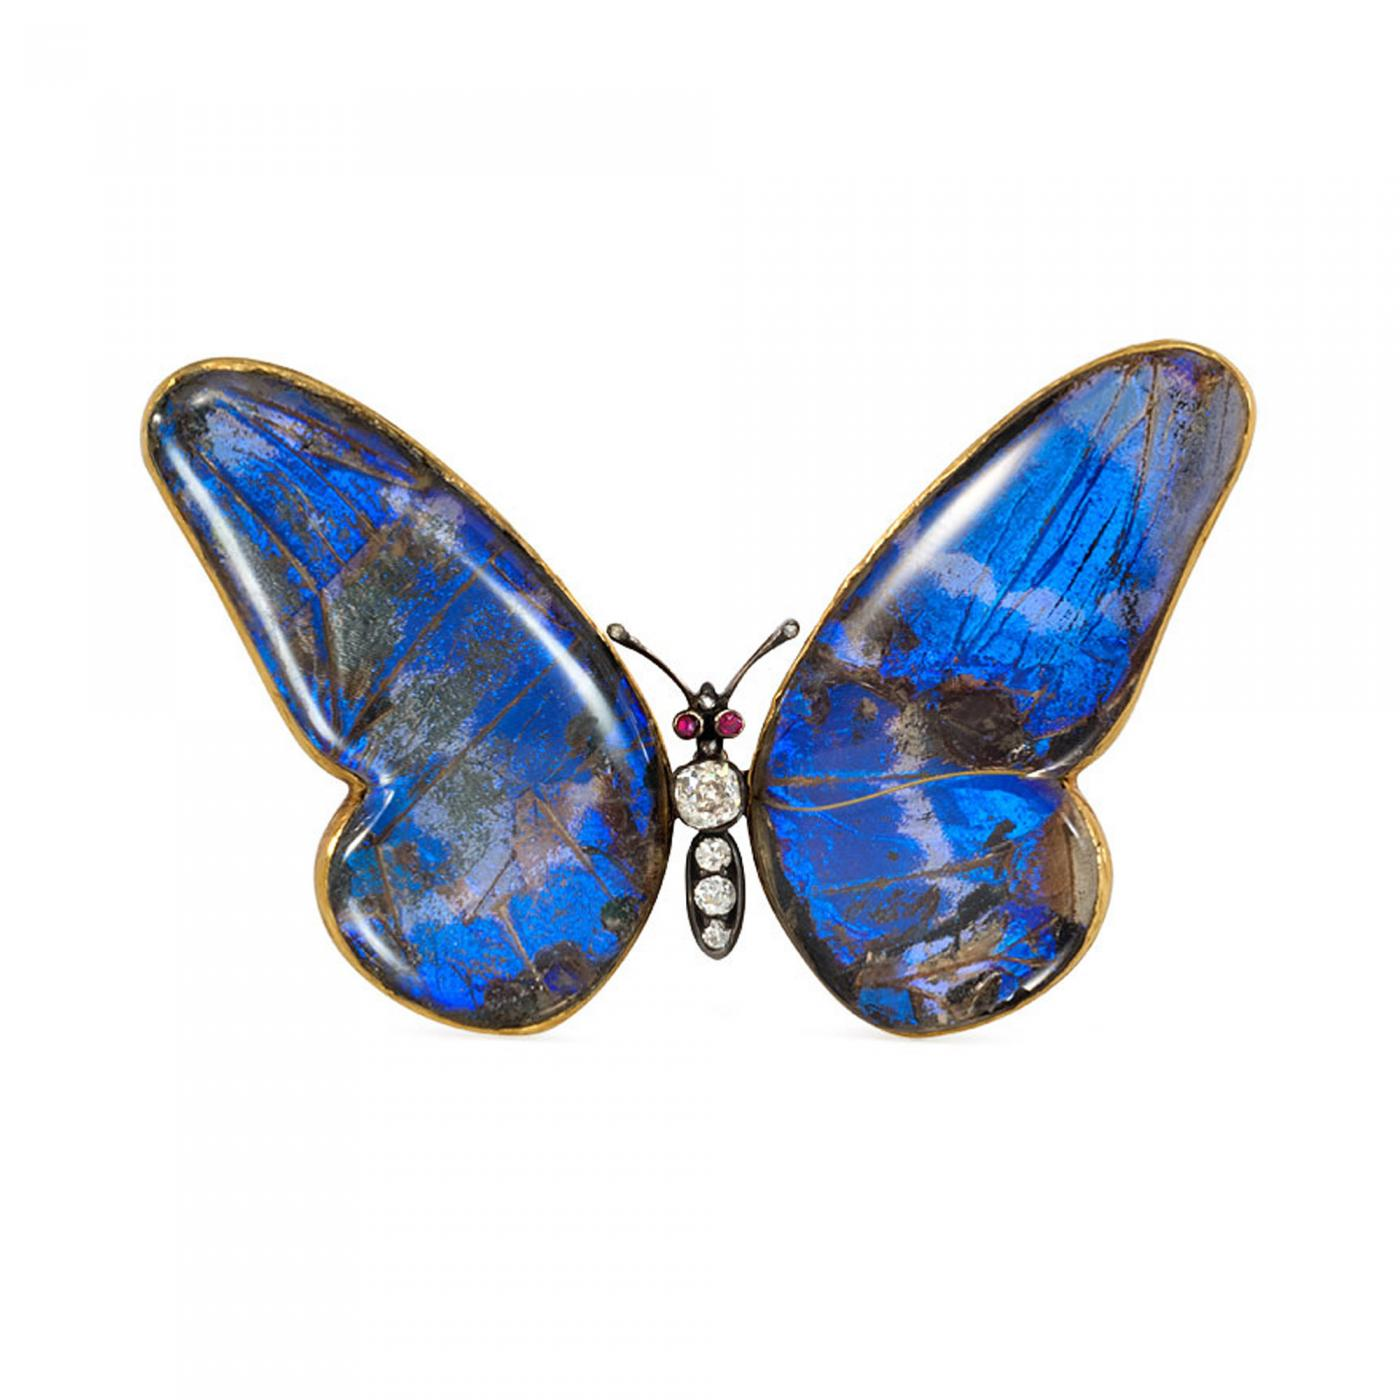 Butterfly Brooch Vintage Pin With Blue and Pink Crystal